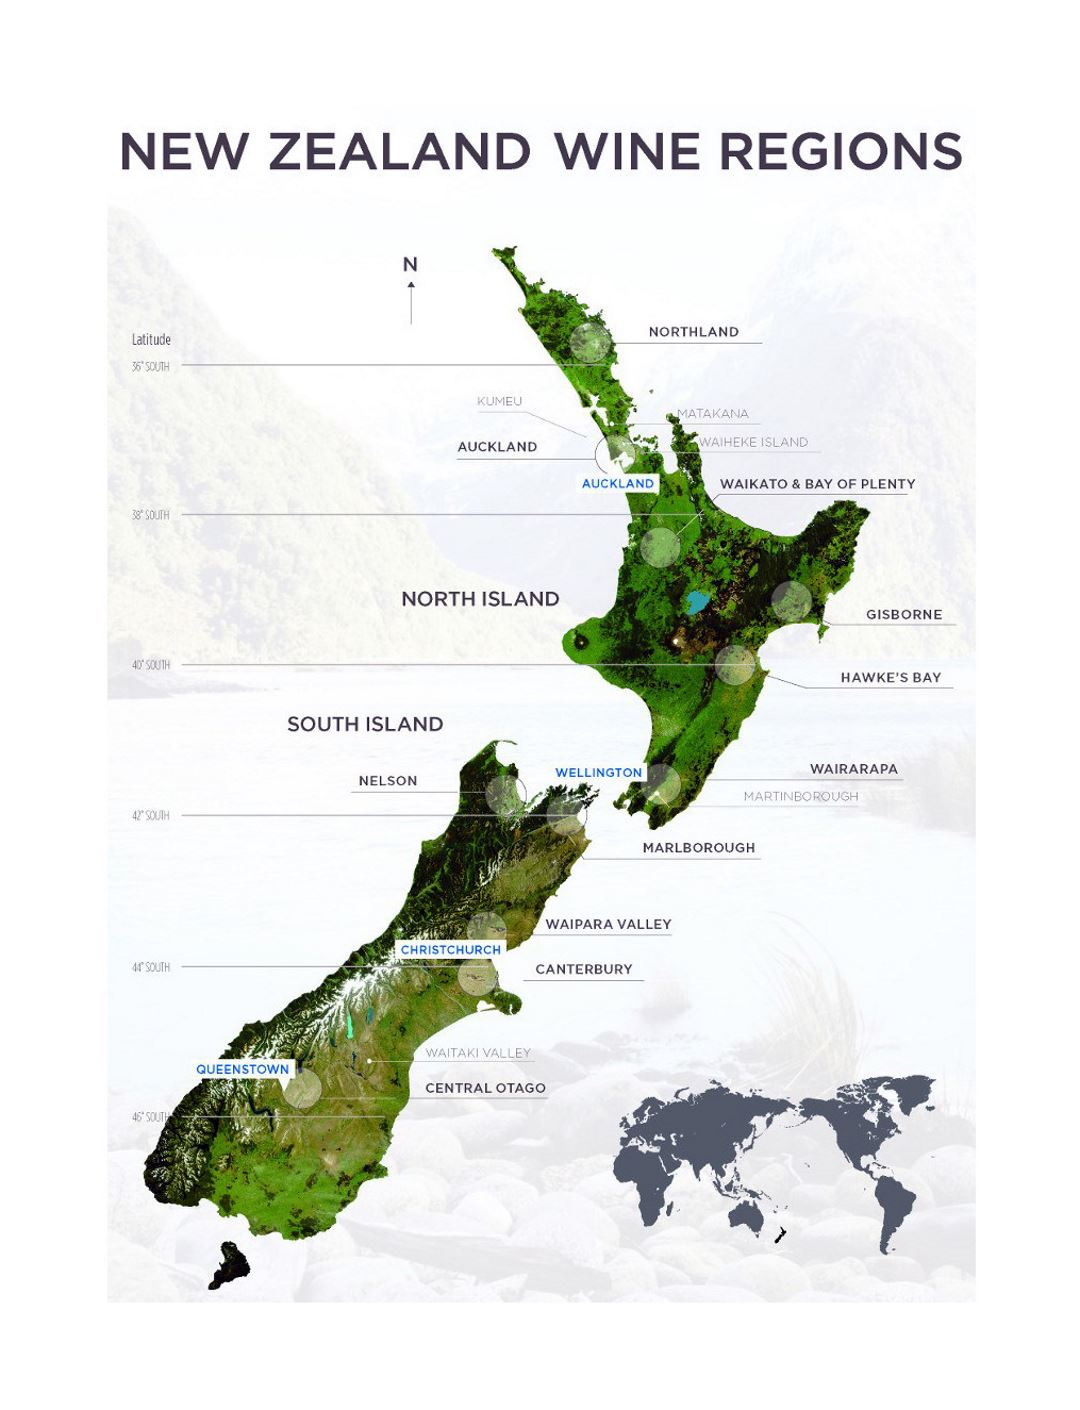 Large map of New Zealand wine regions